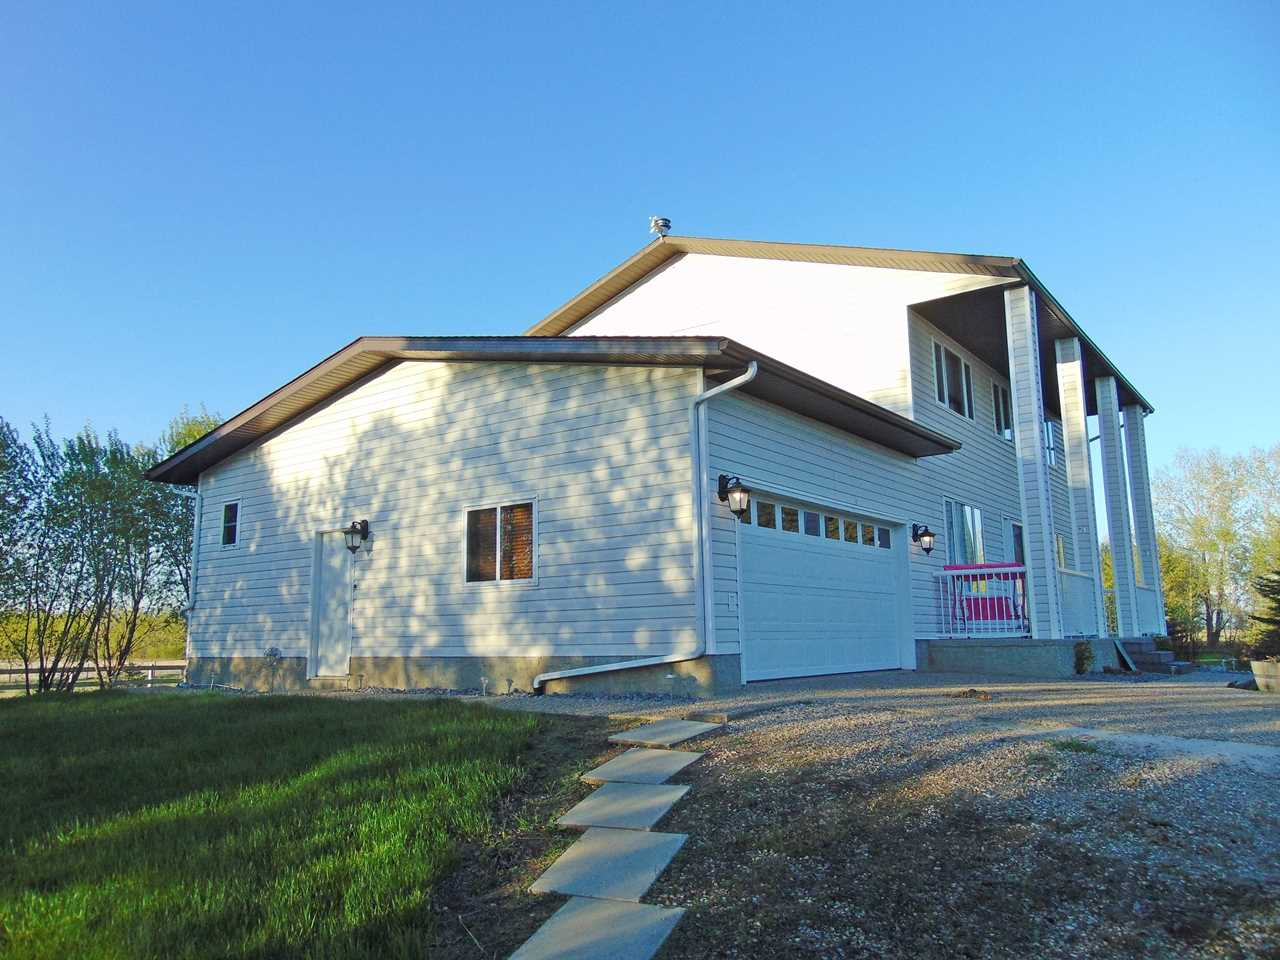 Photo 5: 61124 Rg Rd 253: Rural Westlock County House for sale : MLS(r) # E4065150